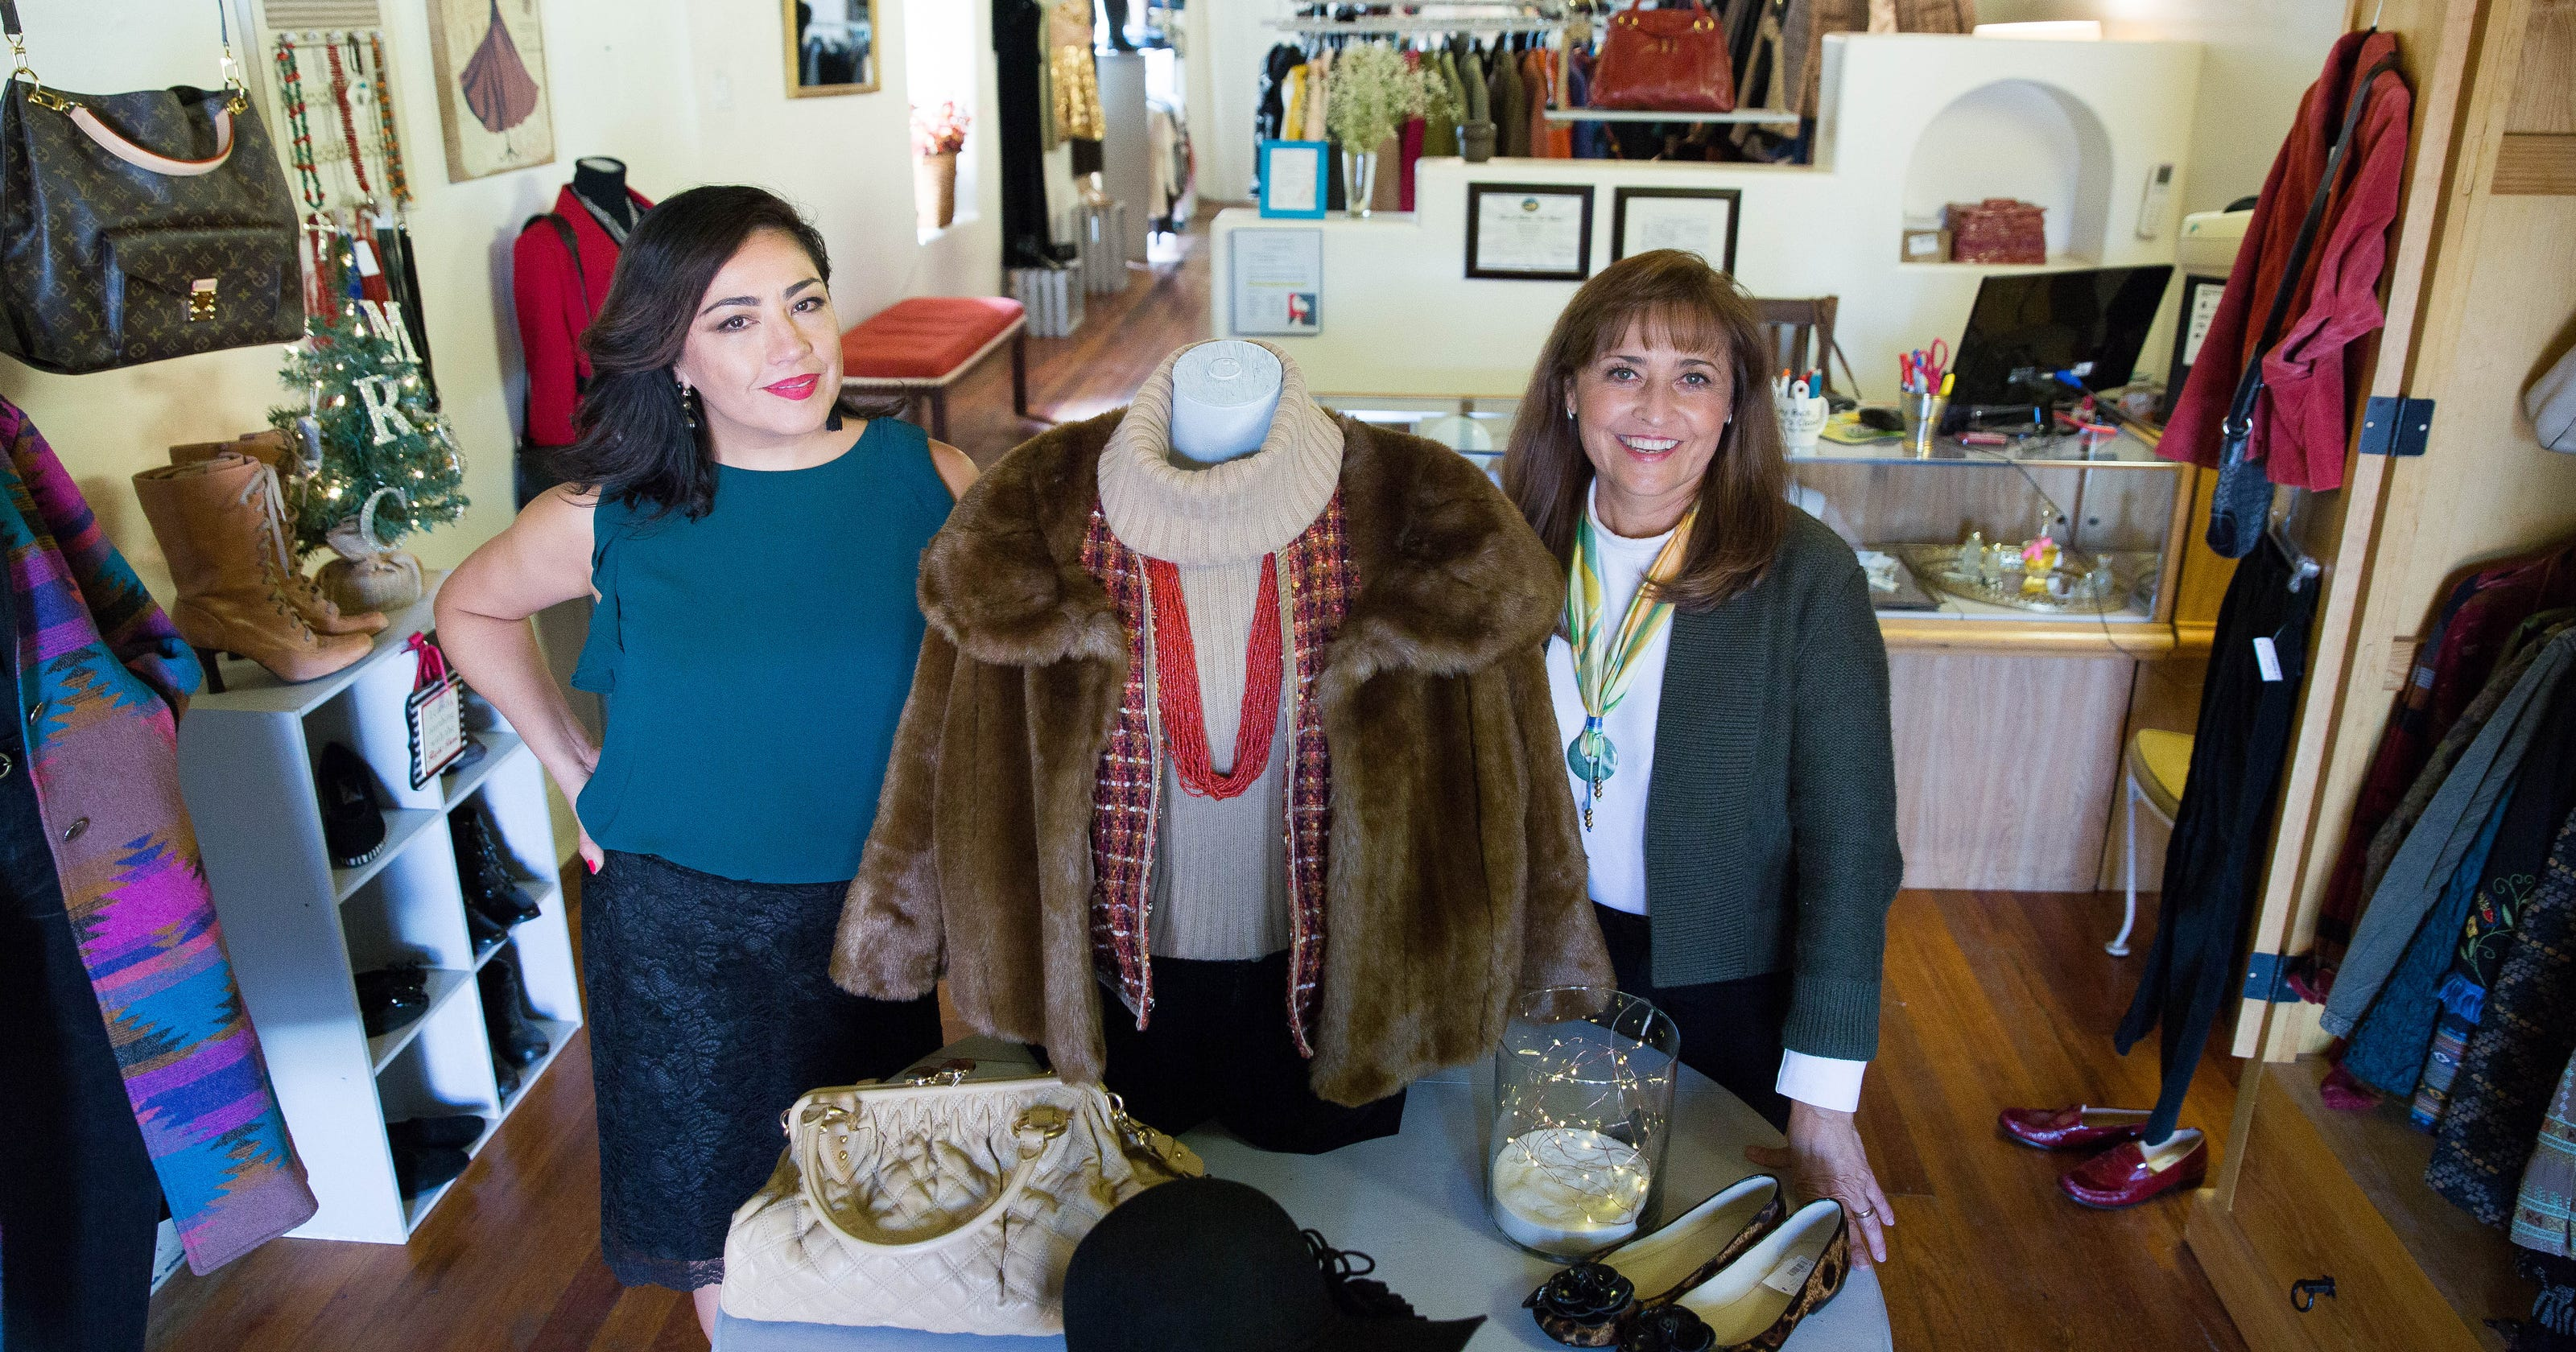 dcb77692eab My Rich Sister s Closet opens in Mesilla under new ownership